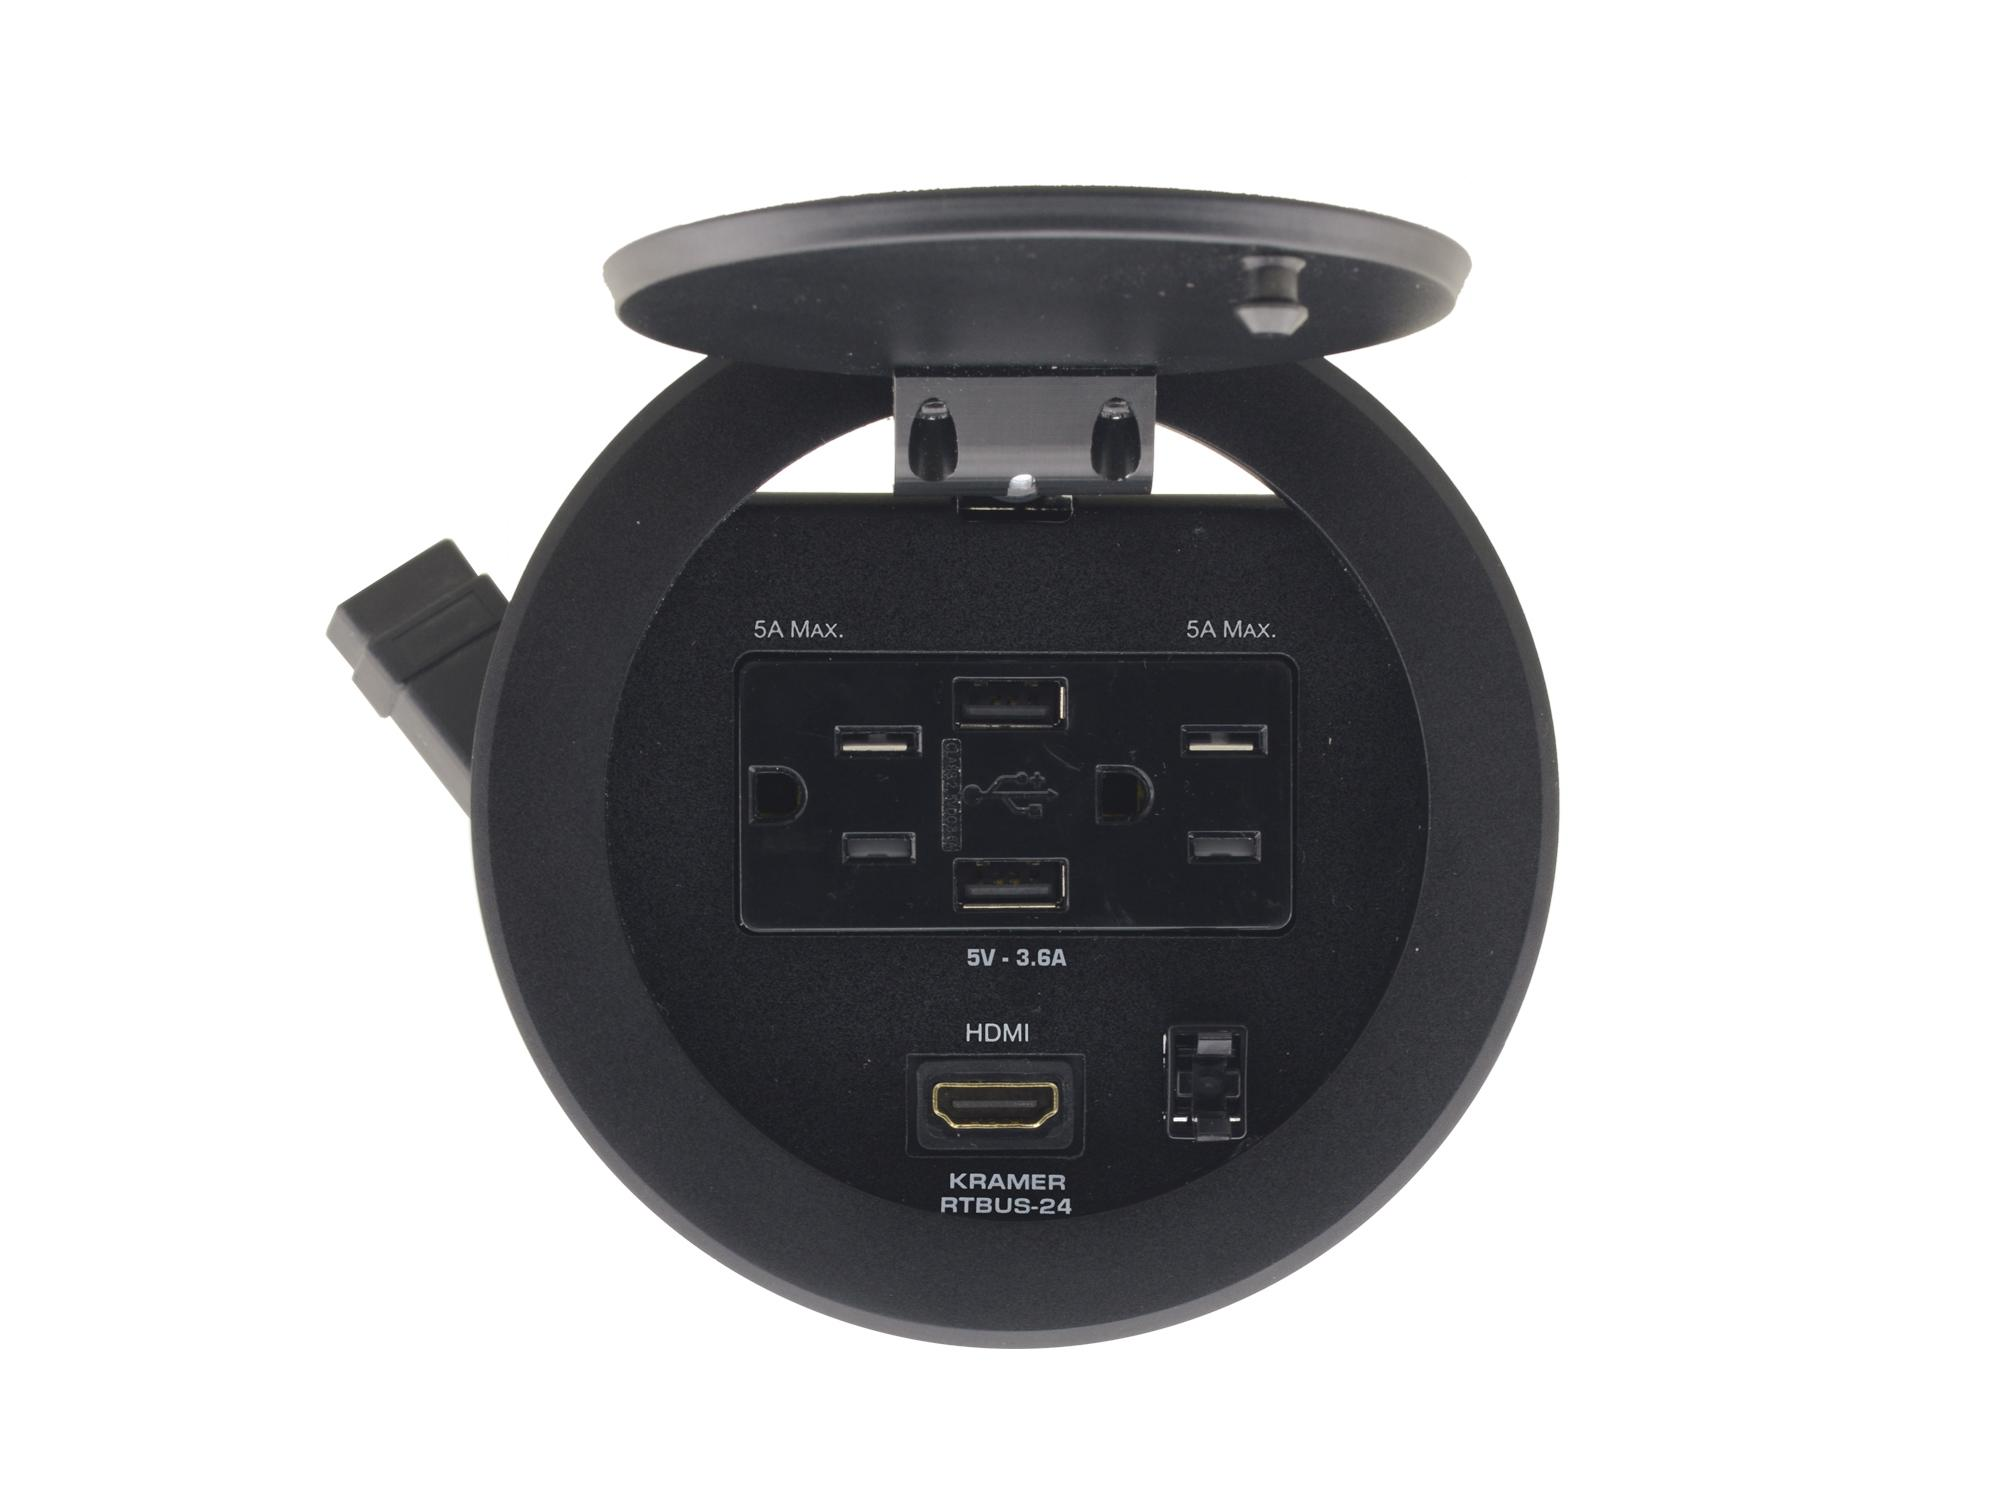 RTBUS-24(B) Round Table Connection Bus with 2 US Power Sockets/2 USB Chargers and 1 HDMI Connector by Kramer